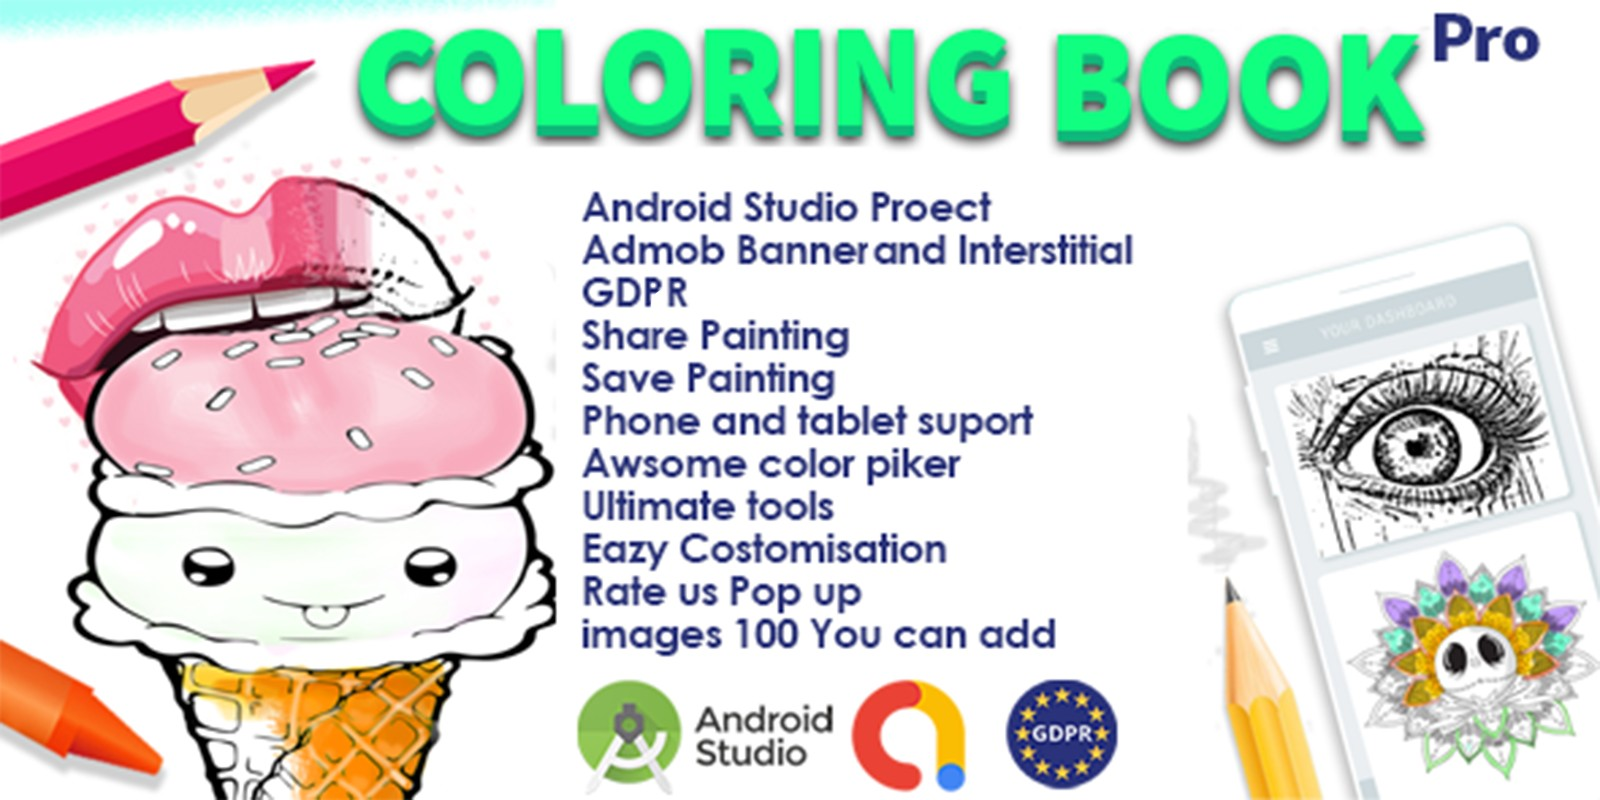 Pro Coloring Book and Drawing Tool Android